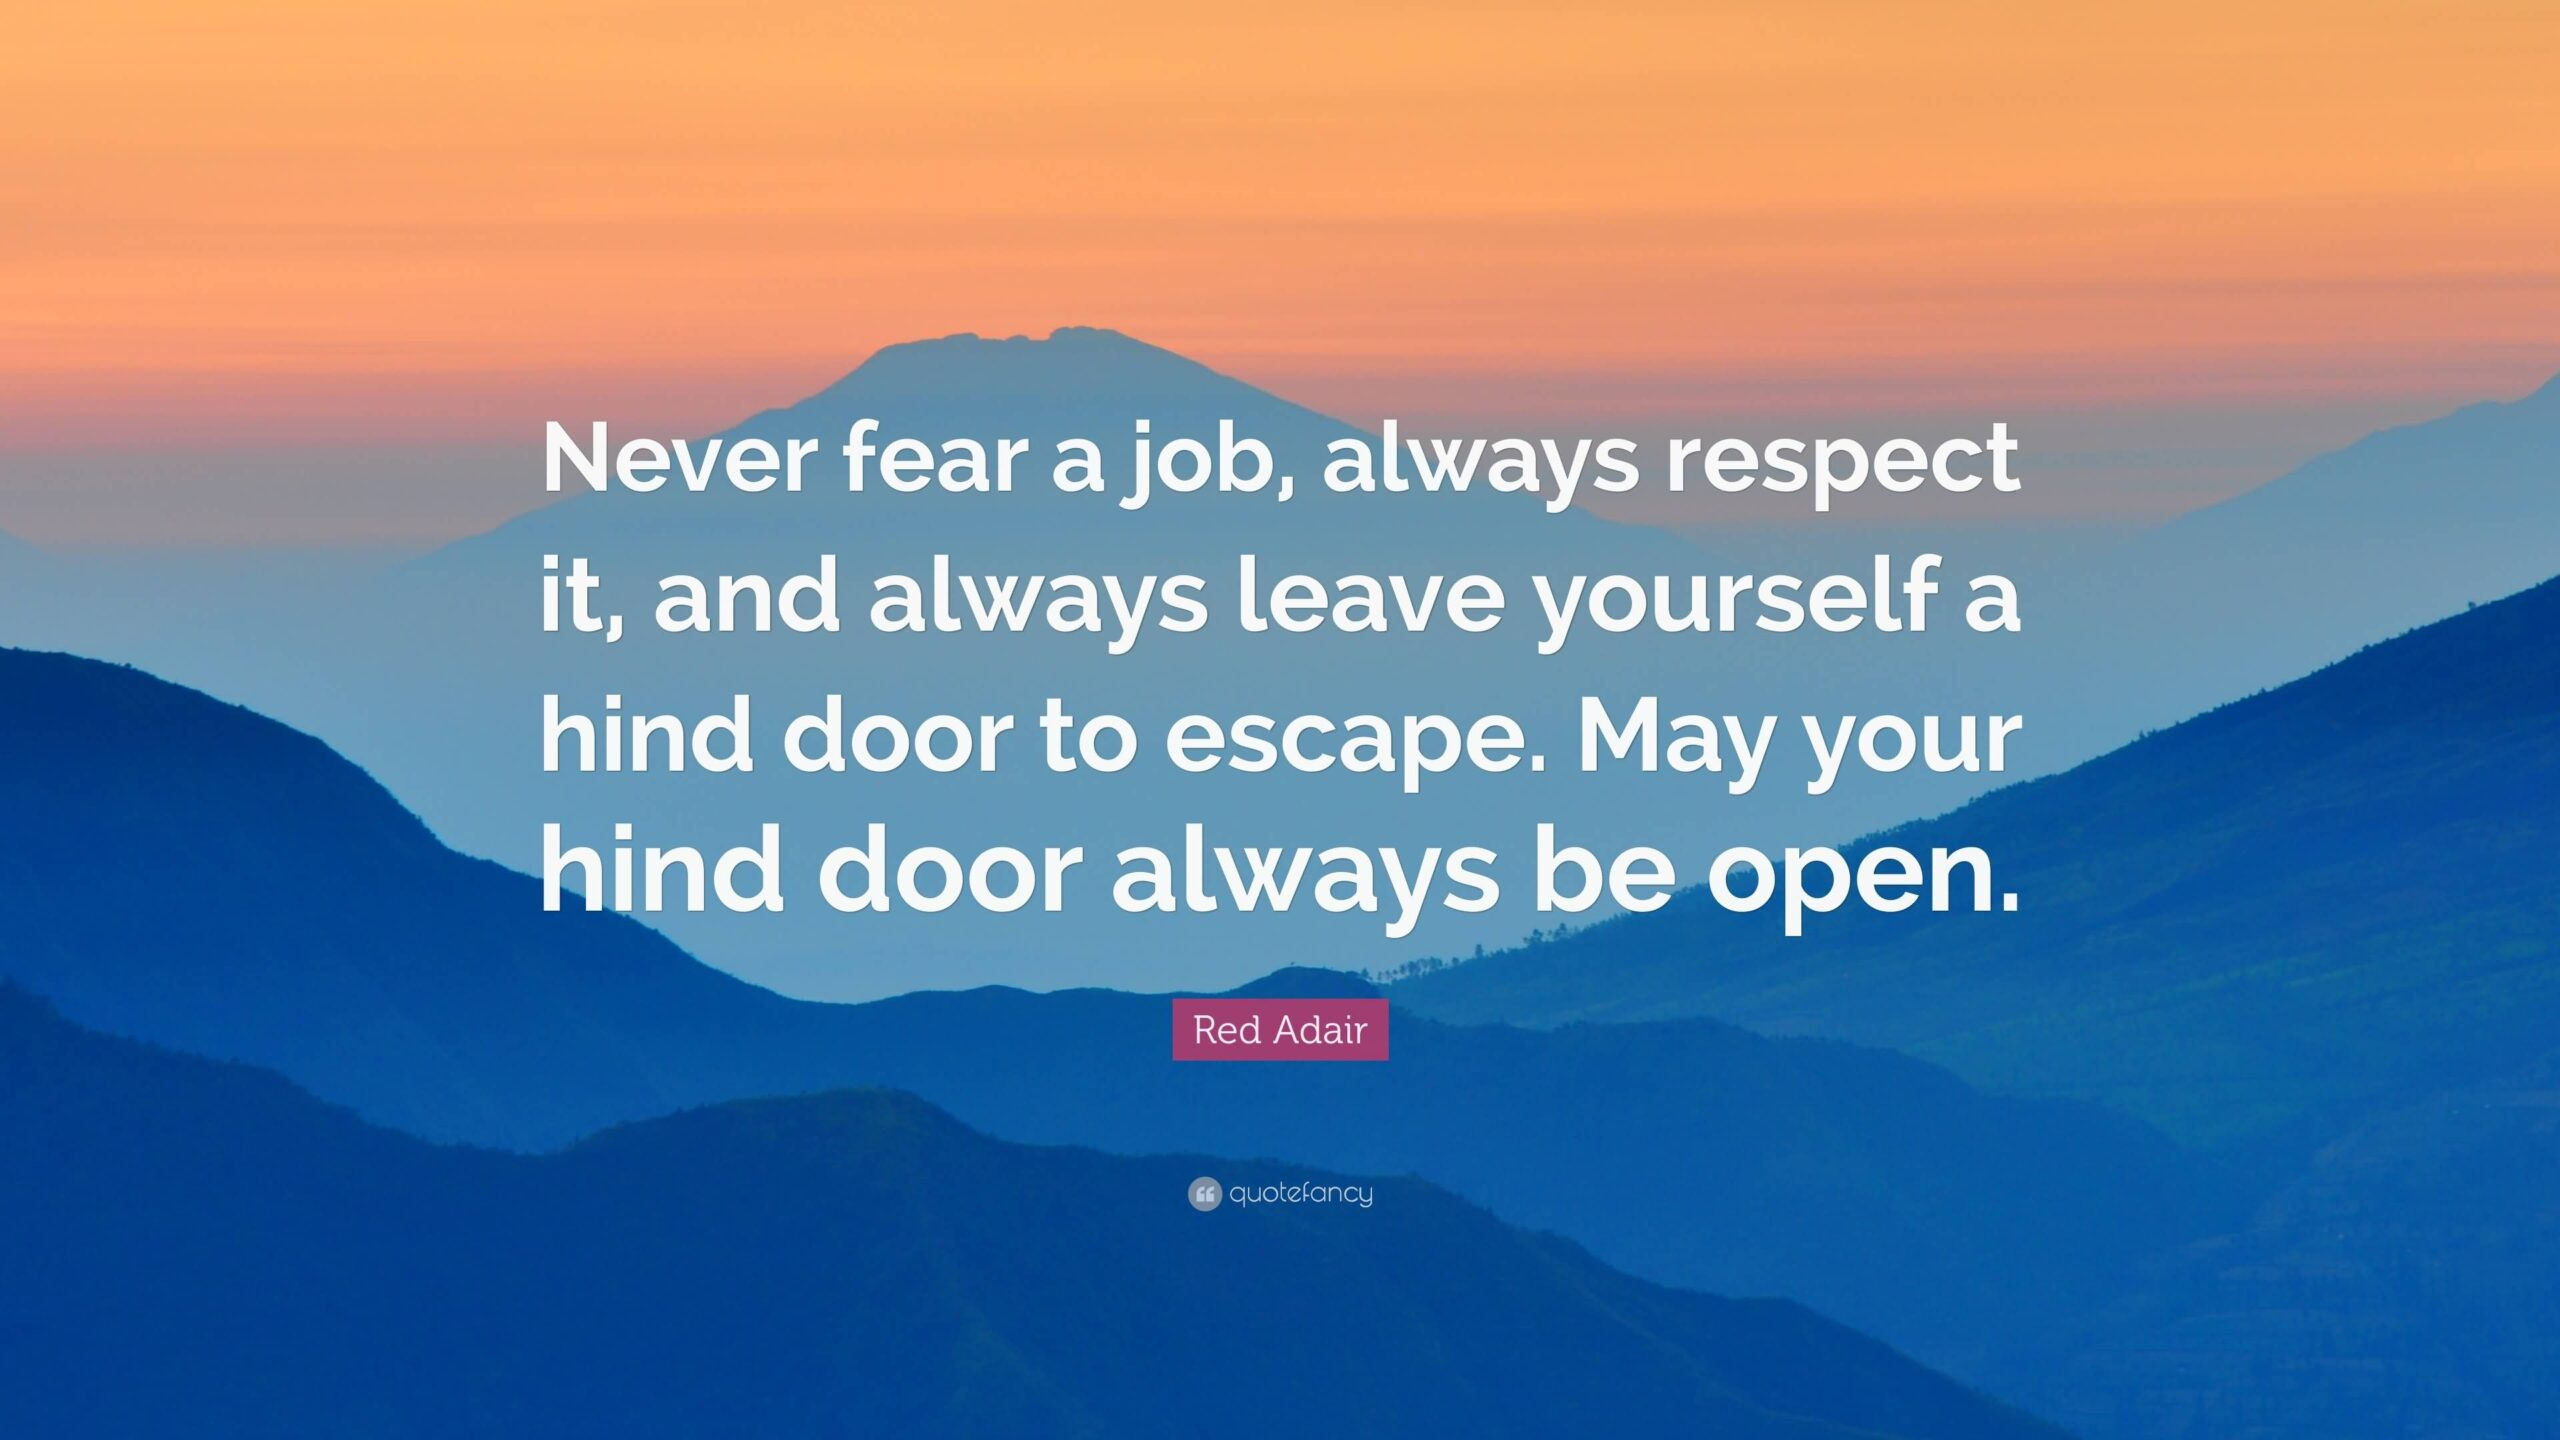 Never Fear A Job Red Adair Quotes